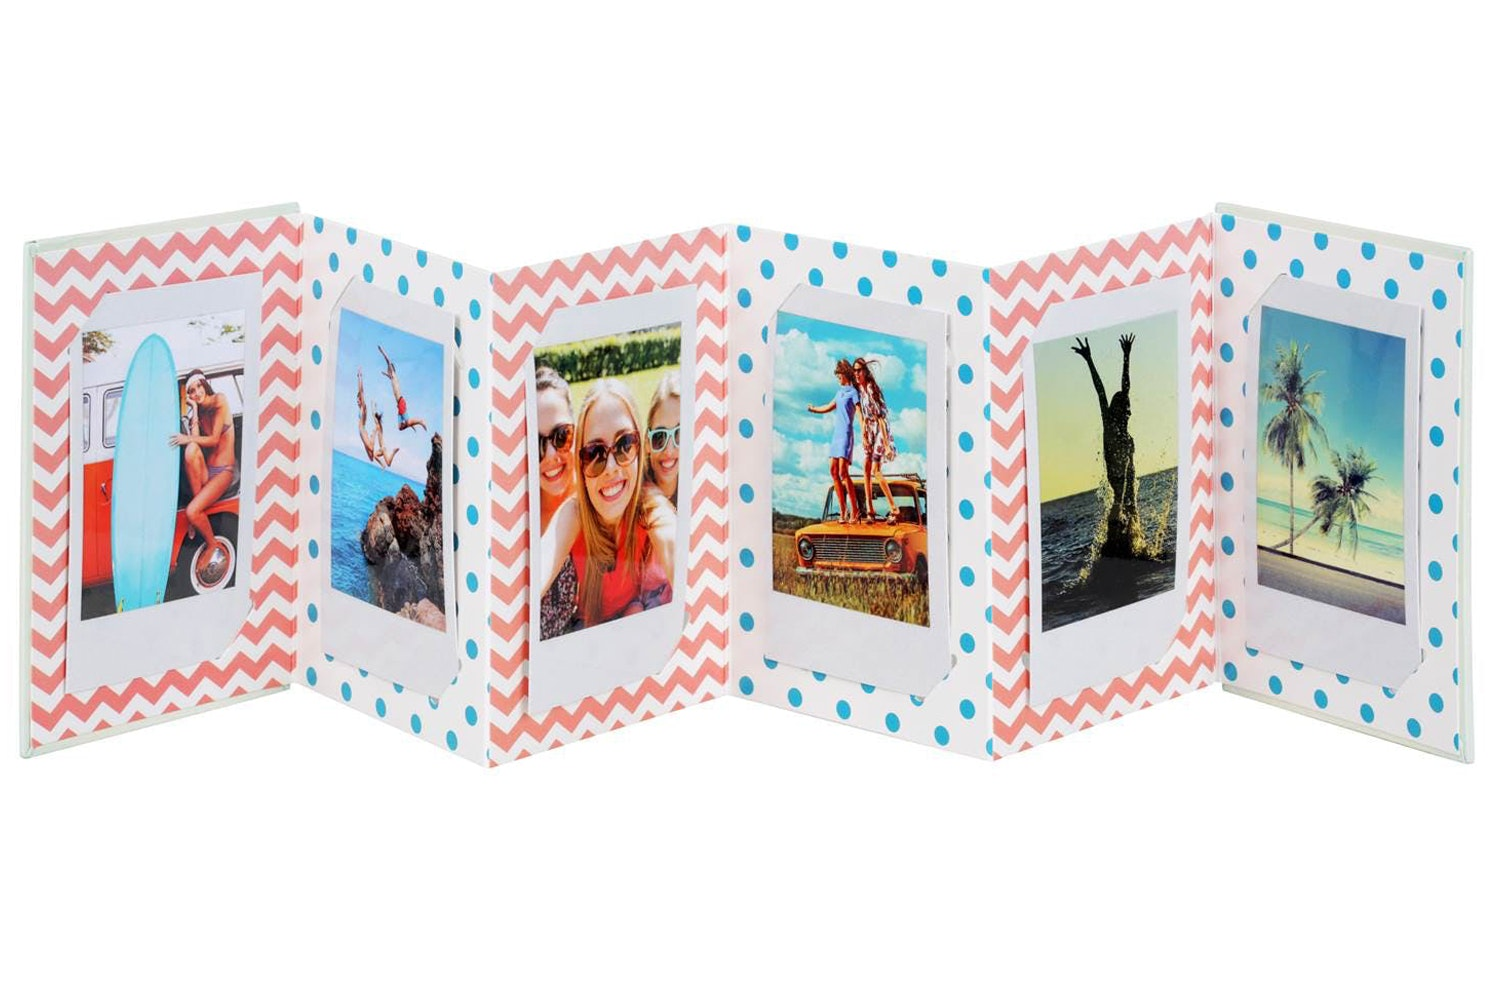 Fujifilm Instax Accordion Photo Frame | Summer